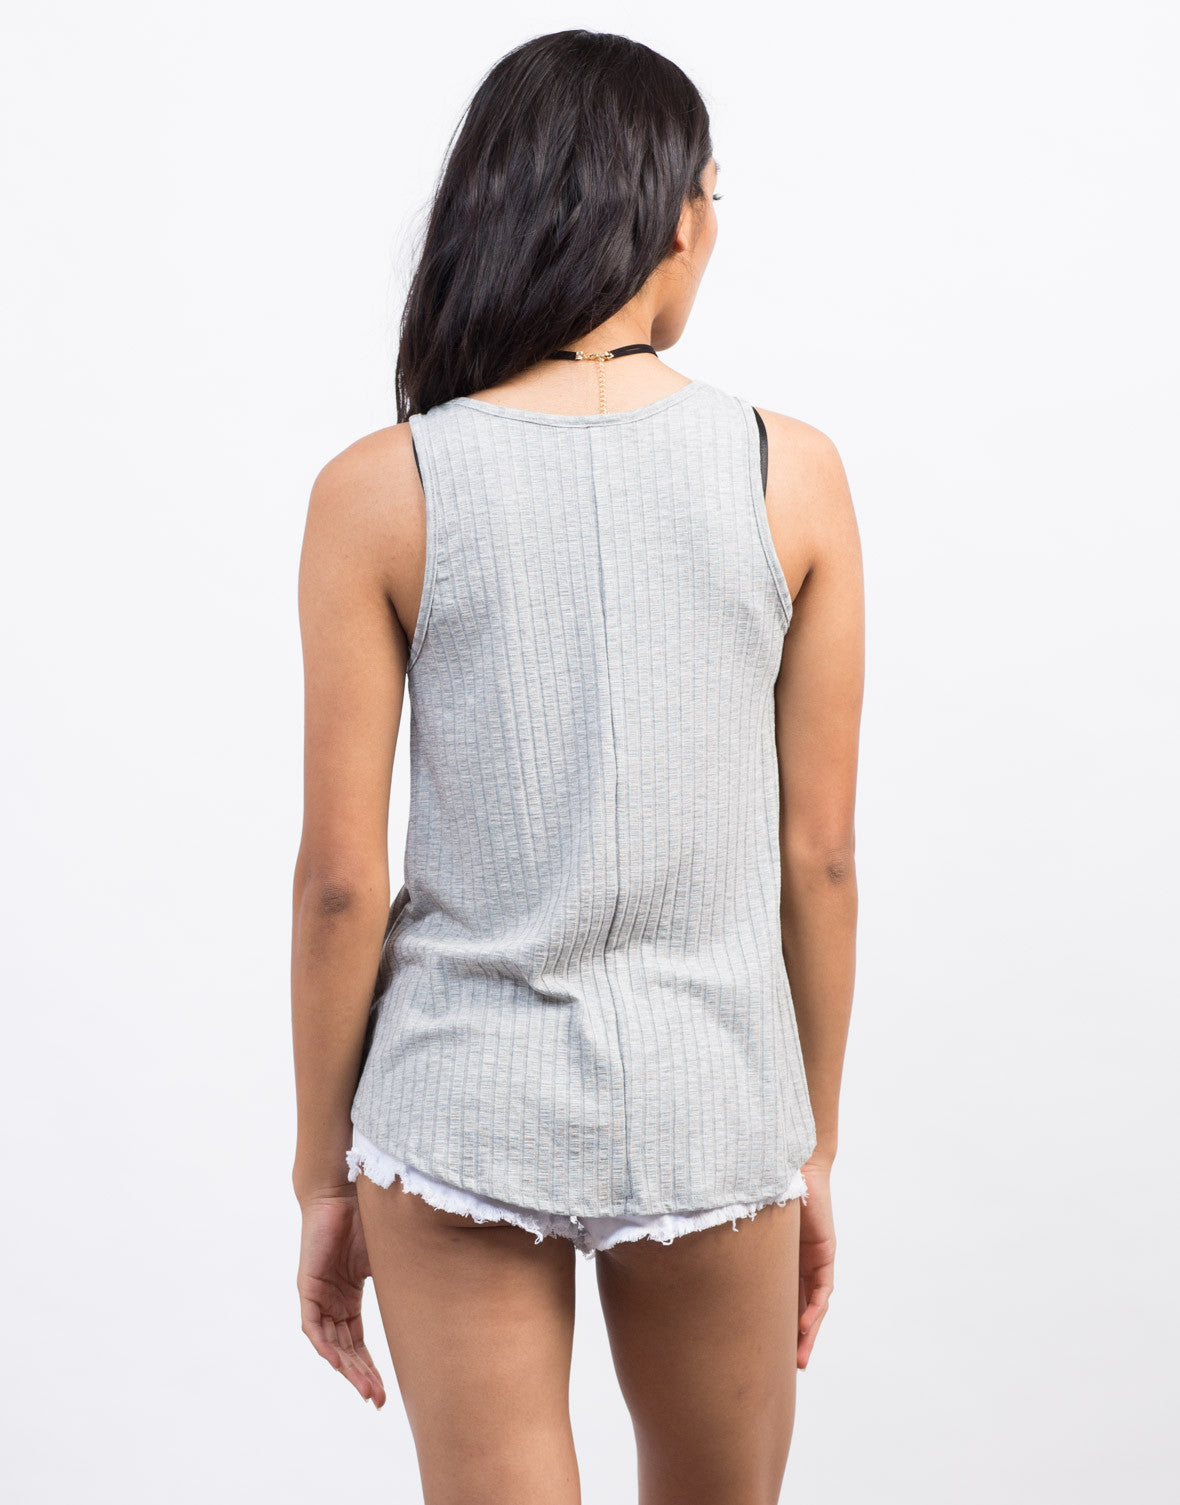 Back View of Flowy Rib Knit Tank Top